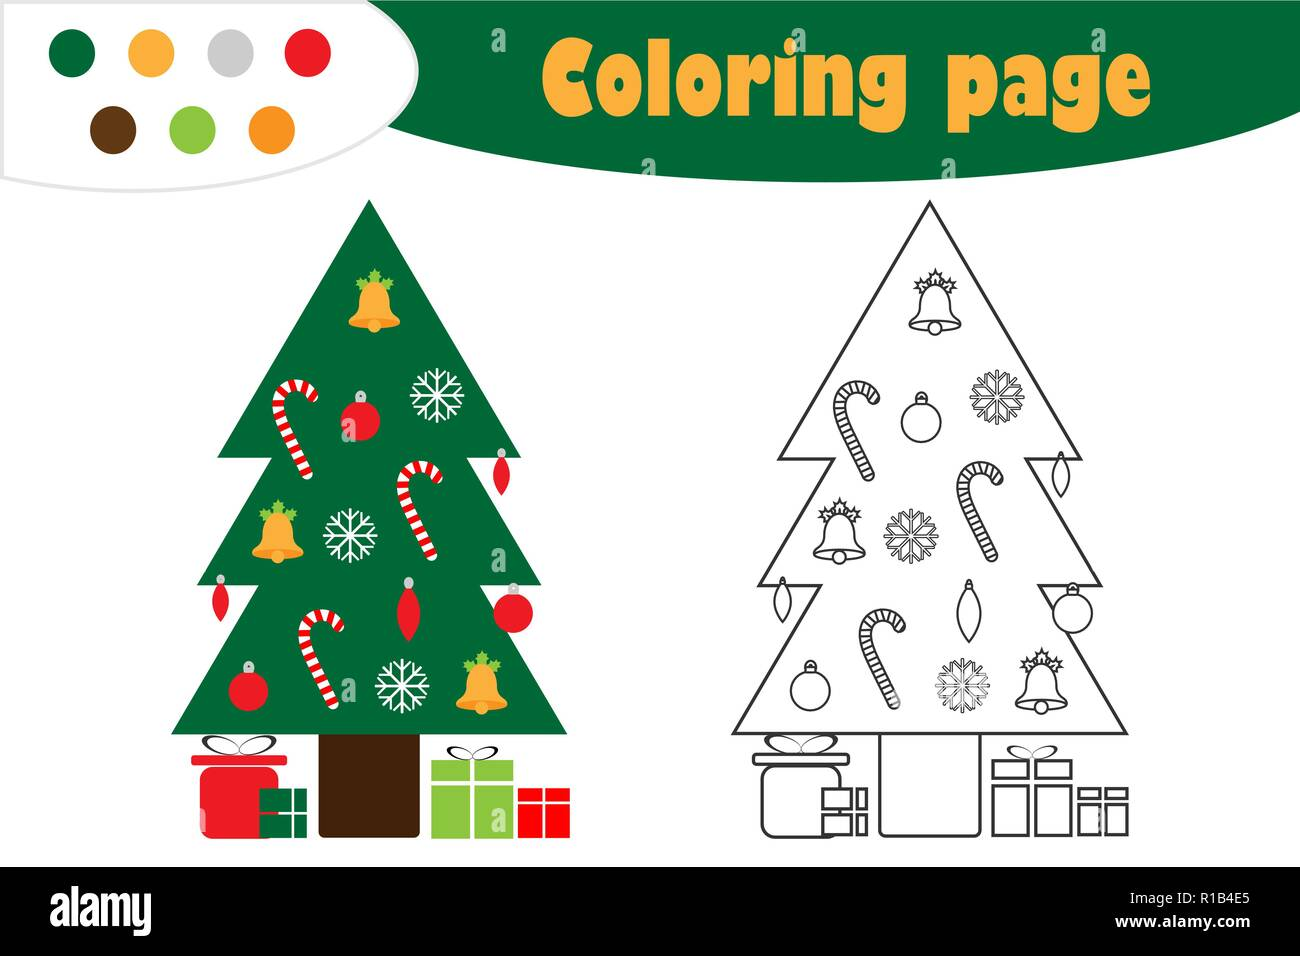 Xmas Tree In Cartoon Style Christmas Coloring Page Education Paper Game For The Development Of Children Kids Preschool Activity Printable Workshee Stock Vector Image Art Alamy